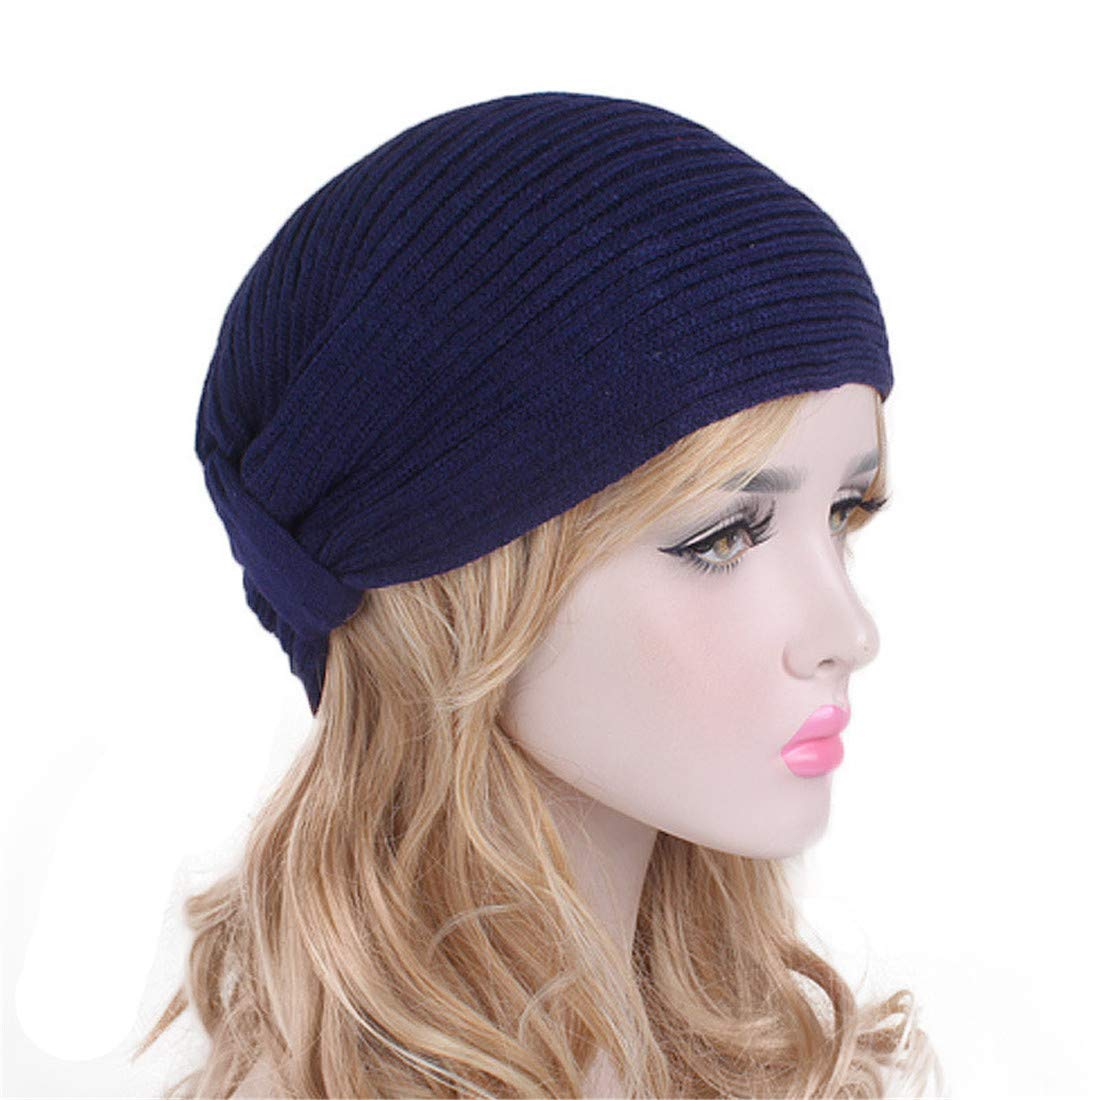 9ece9672398 ... Amazon.com Qhome Autumn Winter Ladies Woolen Caps Alloy Drill Headband  Clothing exquisite style b43a5 ...